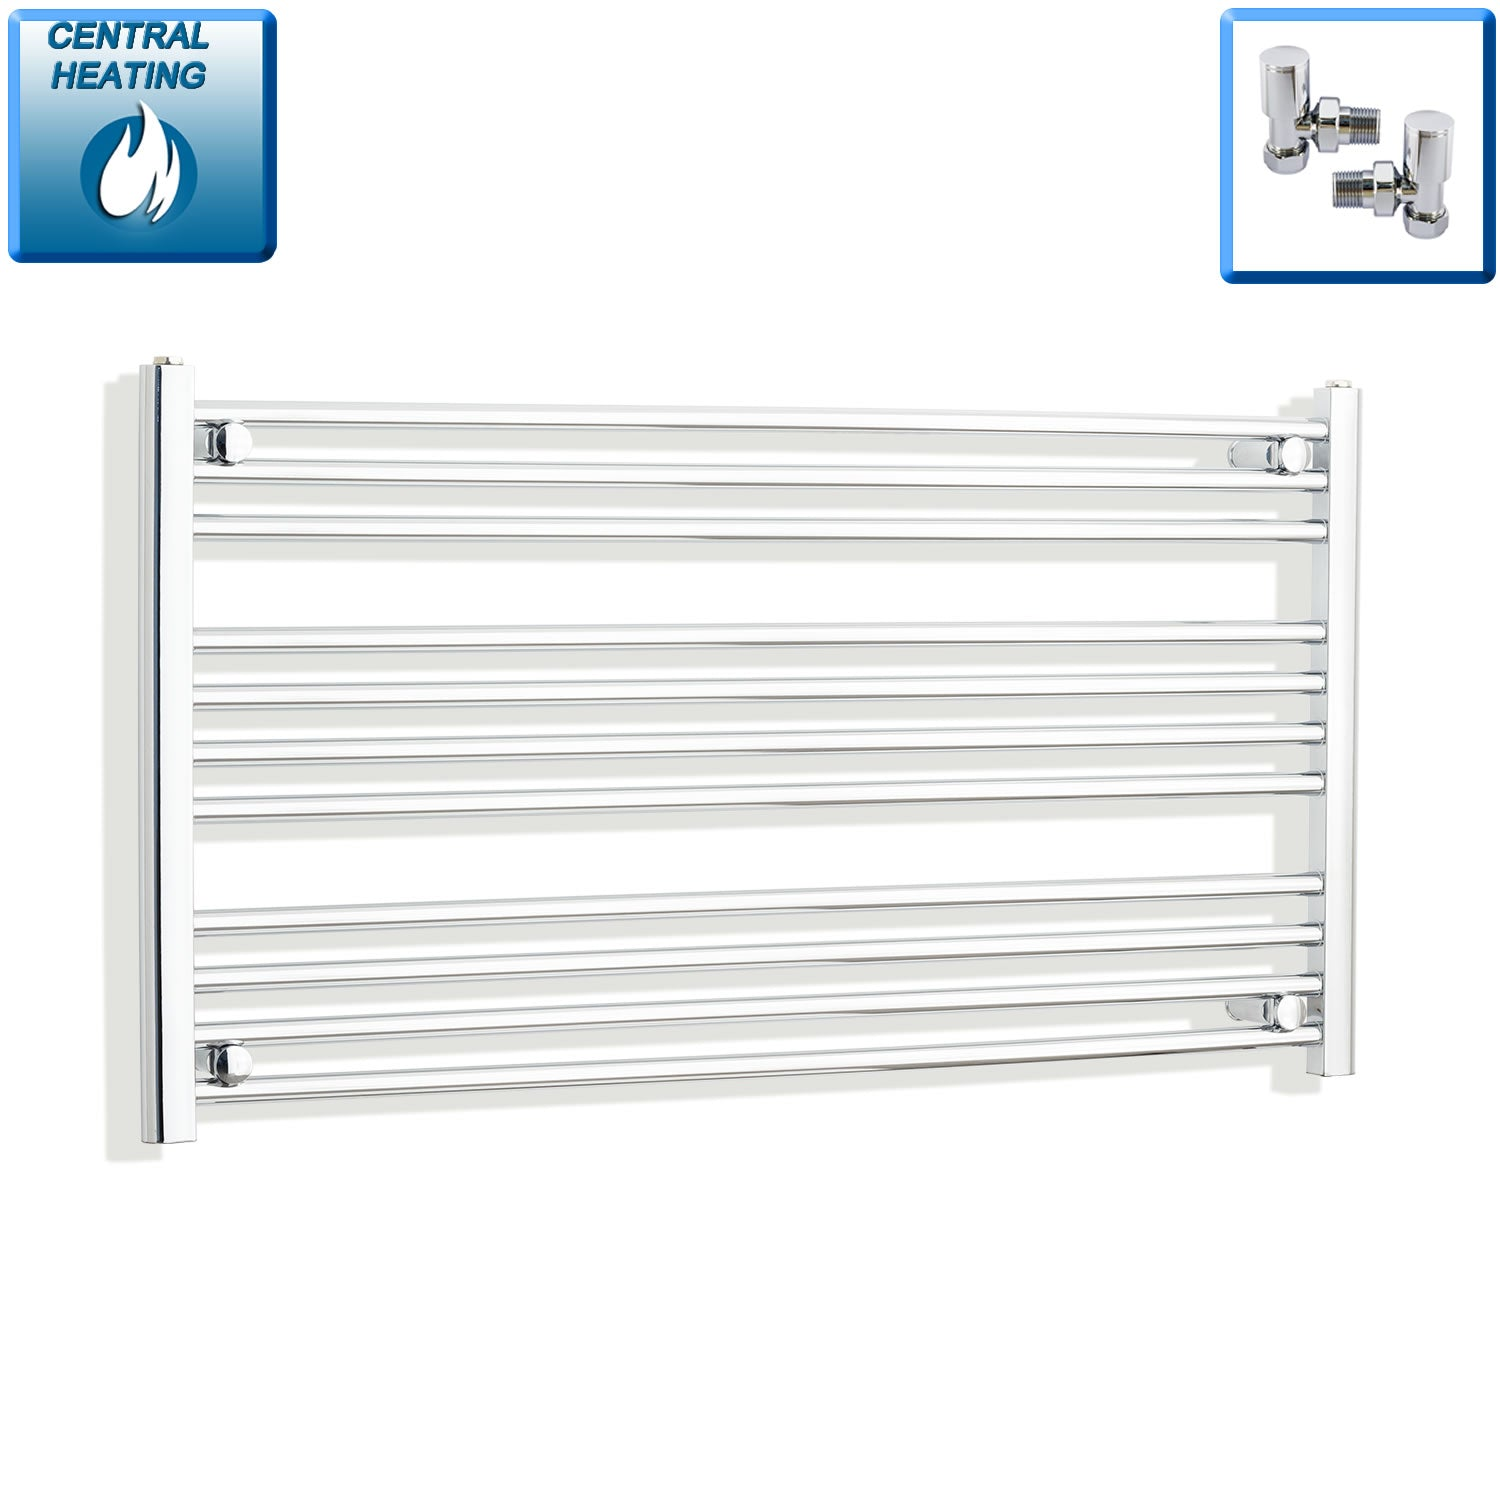 1300mm Wide 600mm High Chrome Towel Rail Radiator With Angled Valve